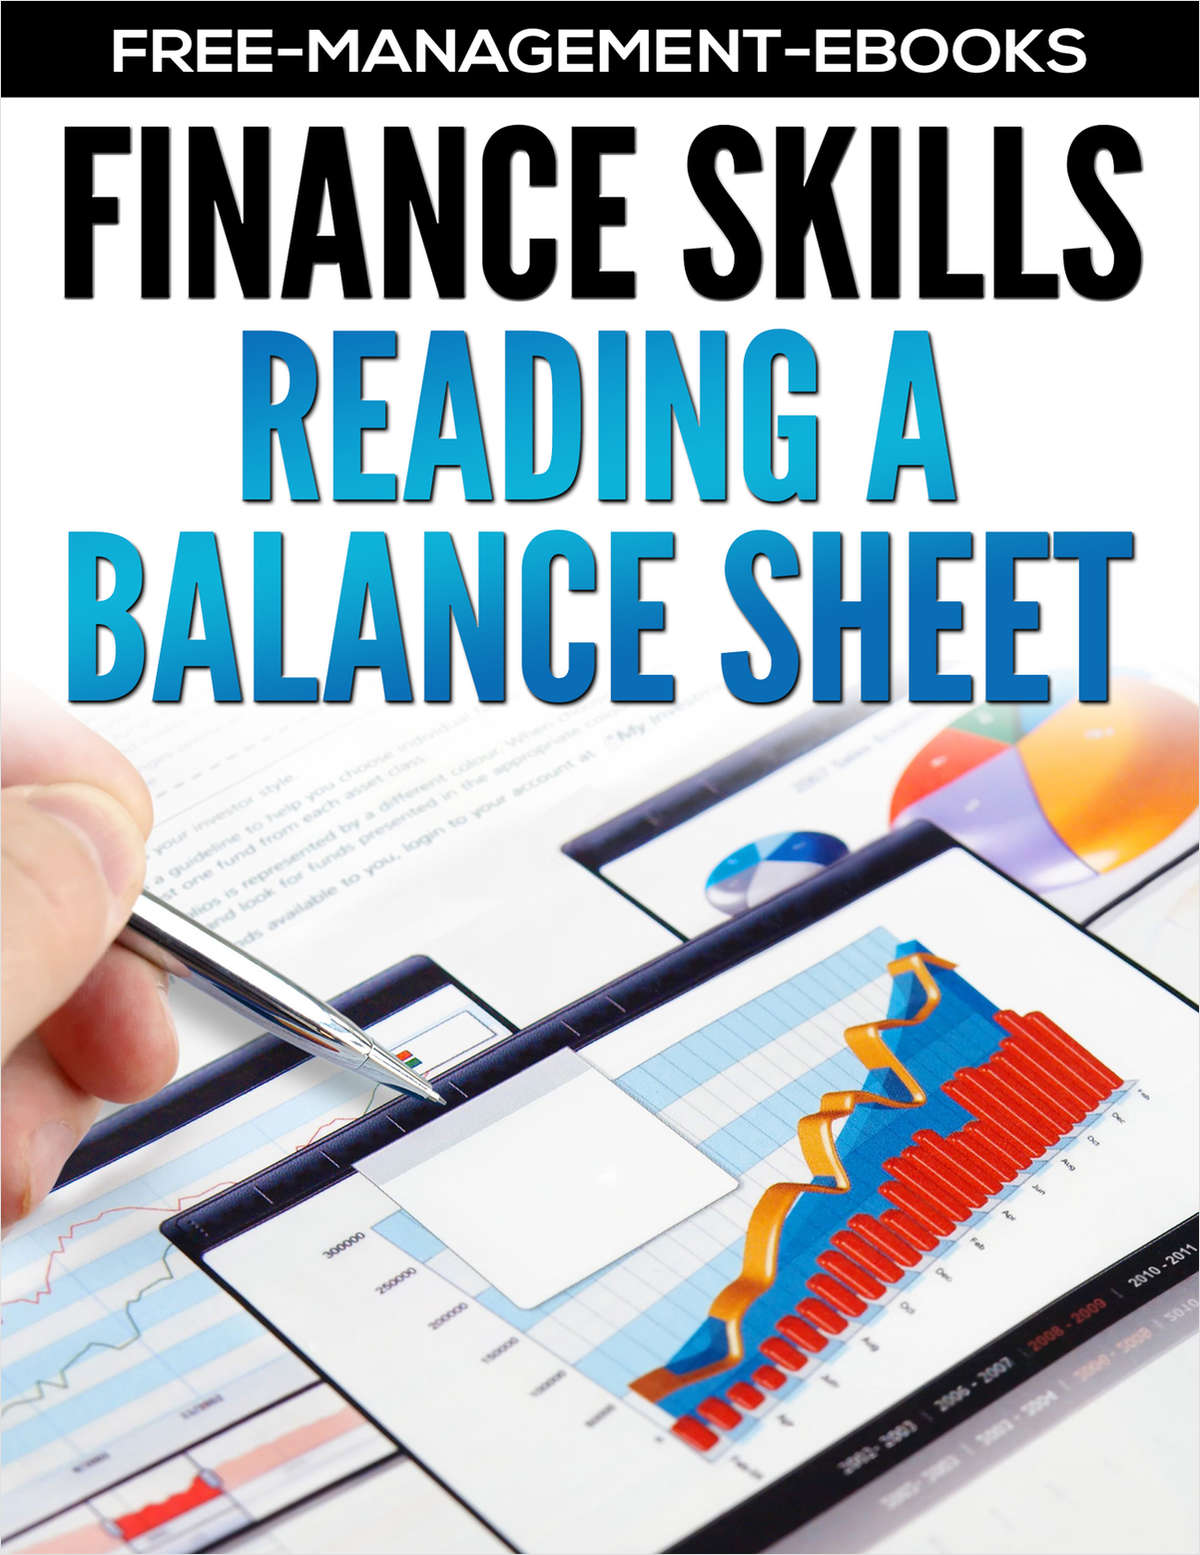 Reading A Balance Sheet -- Developing your Finance Skills